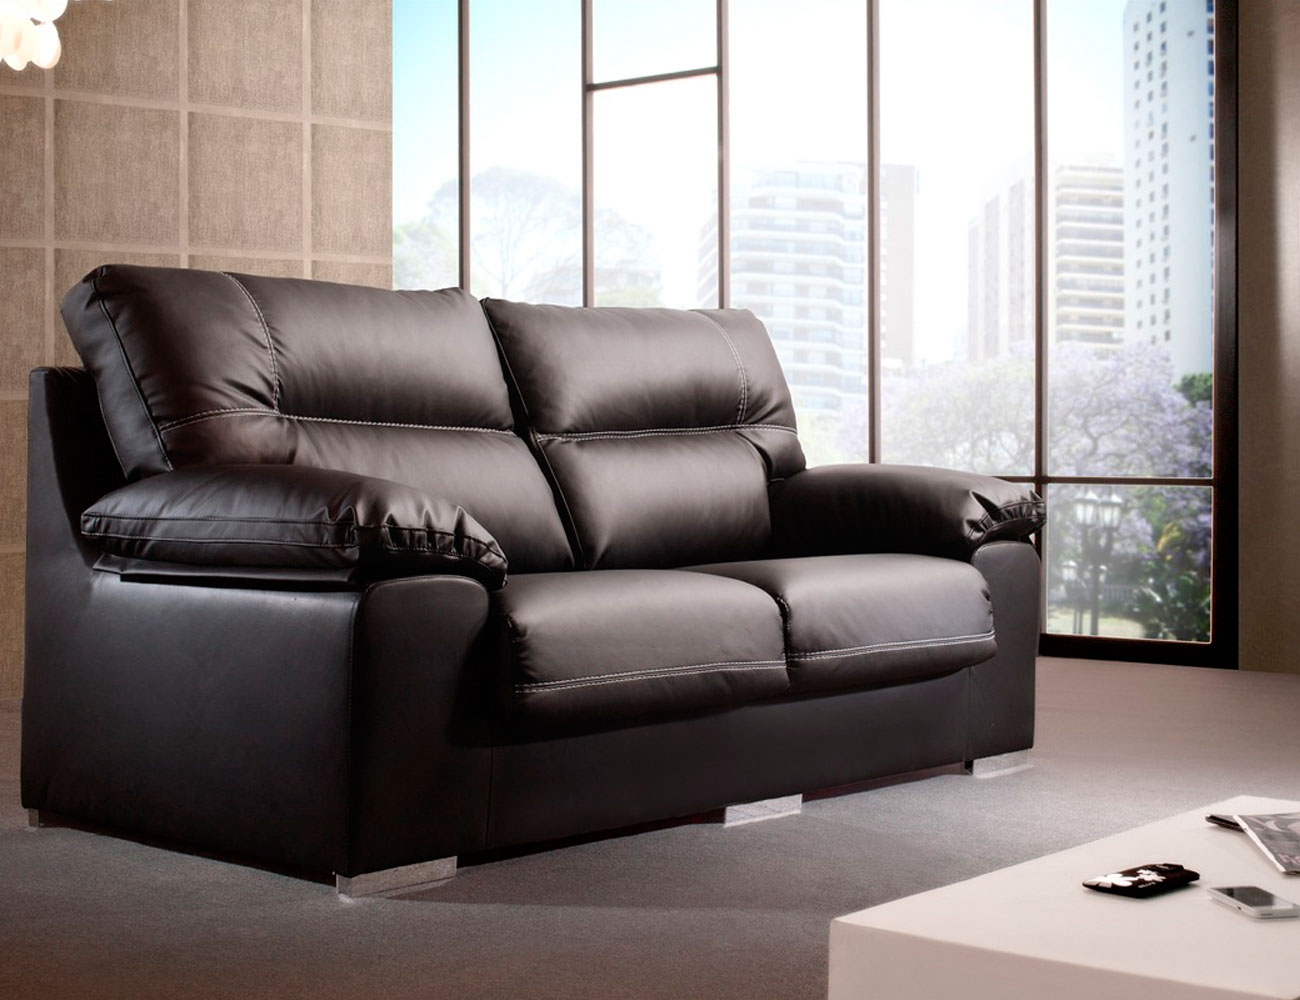 Sofa 3 plazas polipiel negro18